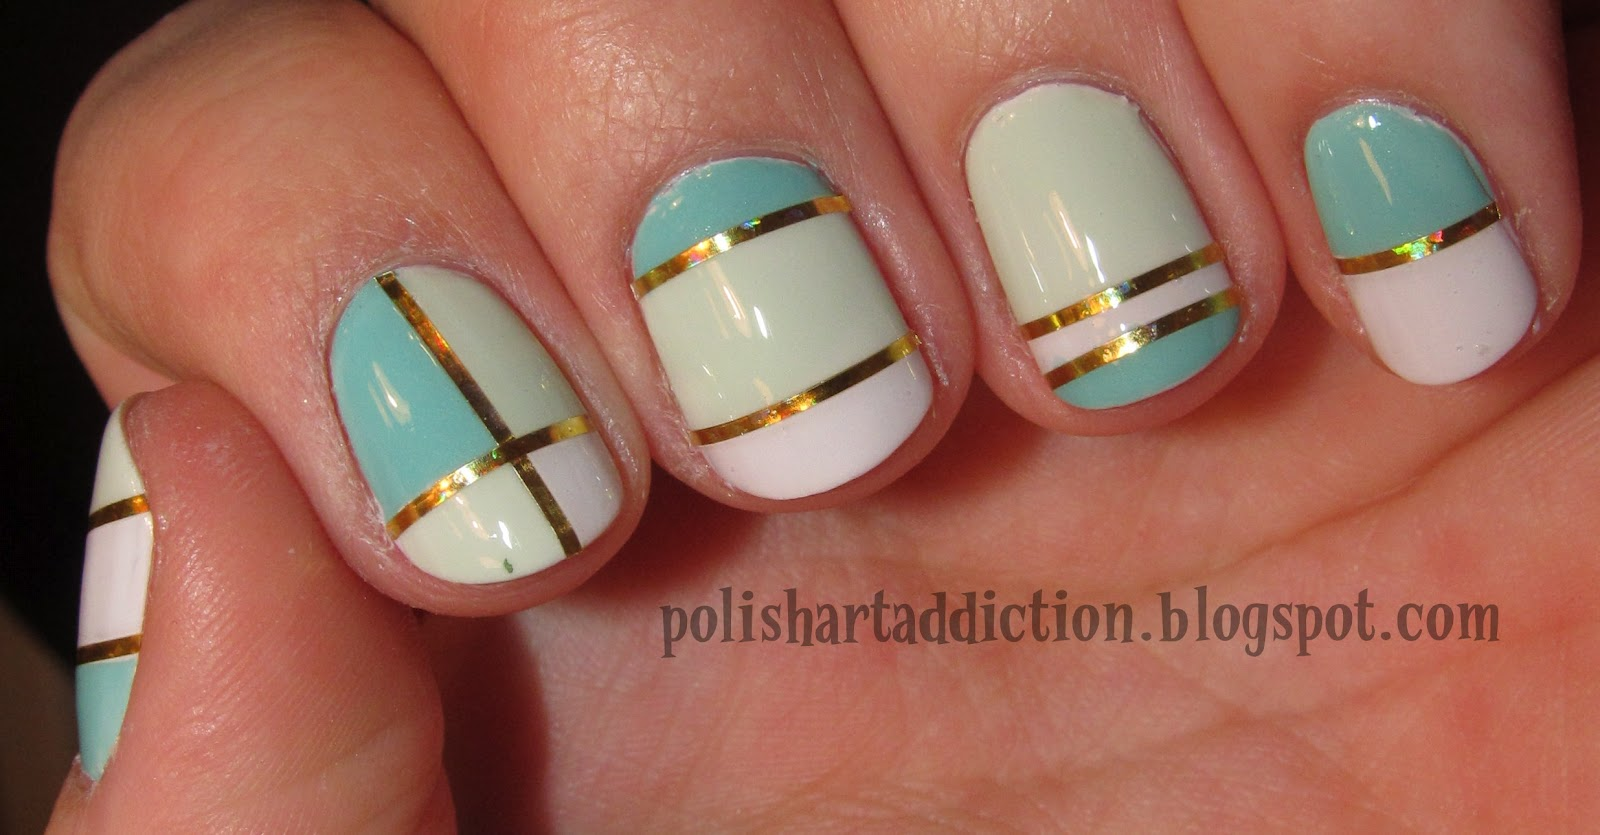 Toe Nail Designs Using Tape: Nail art pedicure designs toe mani asked.